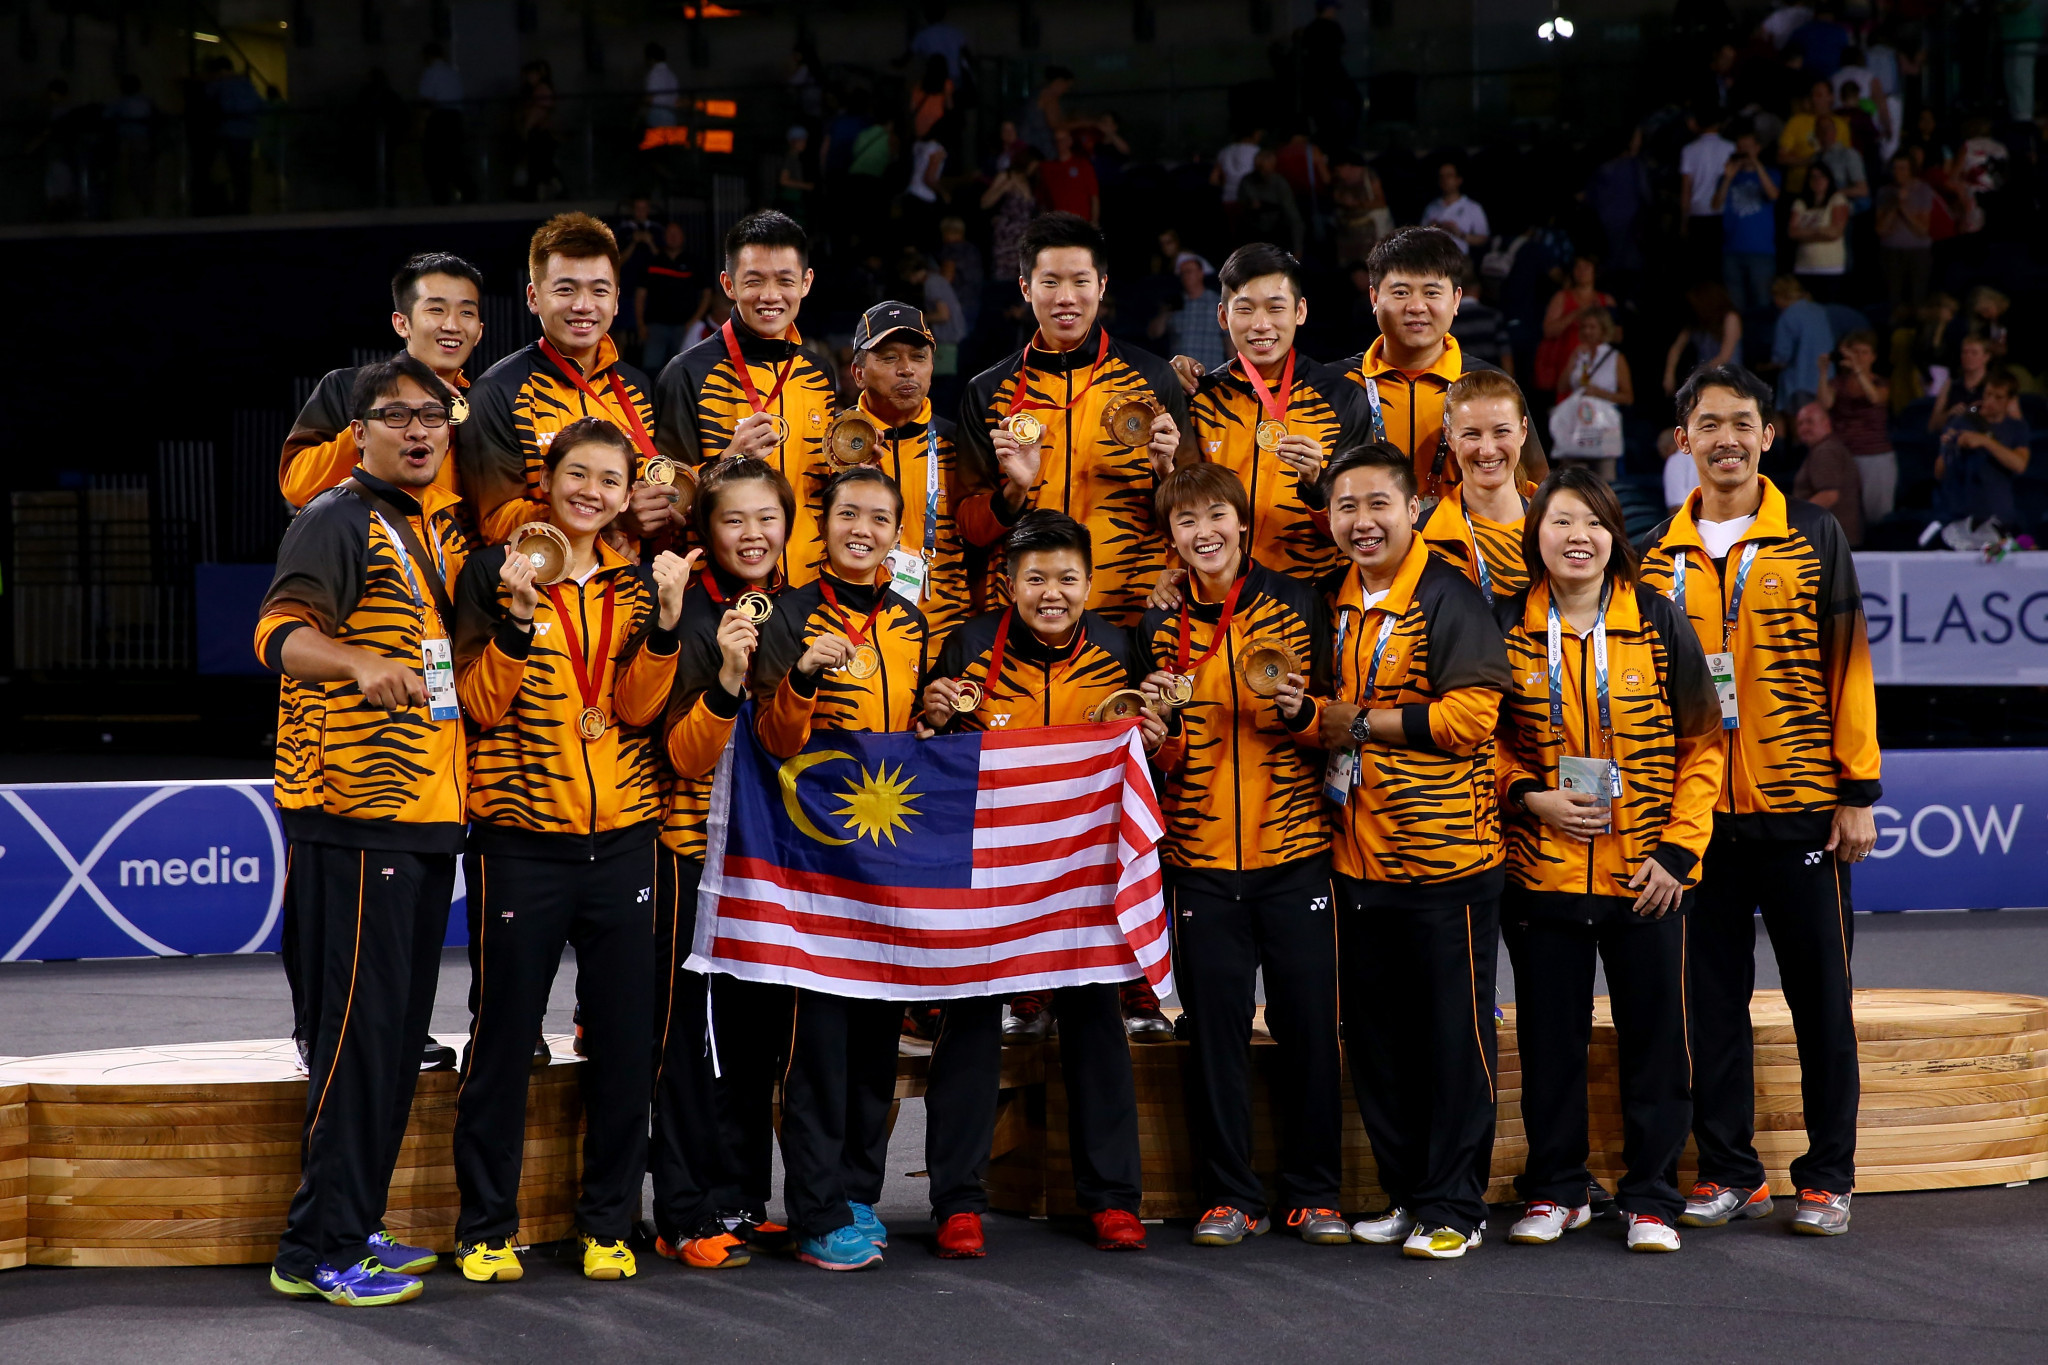 Malaysia won the mixed team event at the Glasgow 2014 Commonwealth Games ©Getty Images